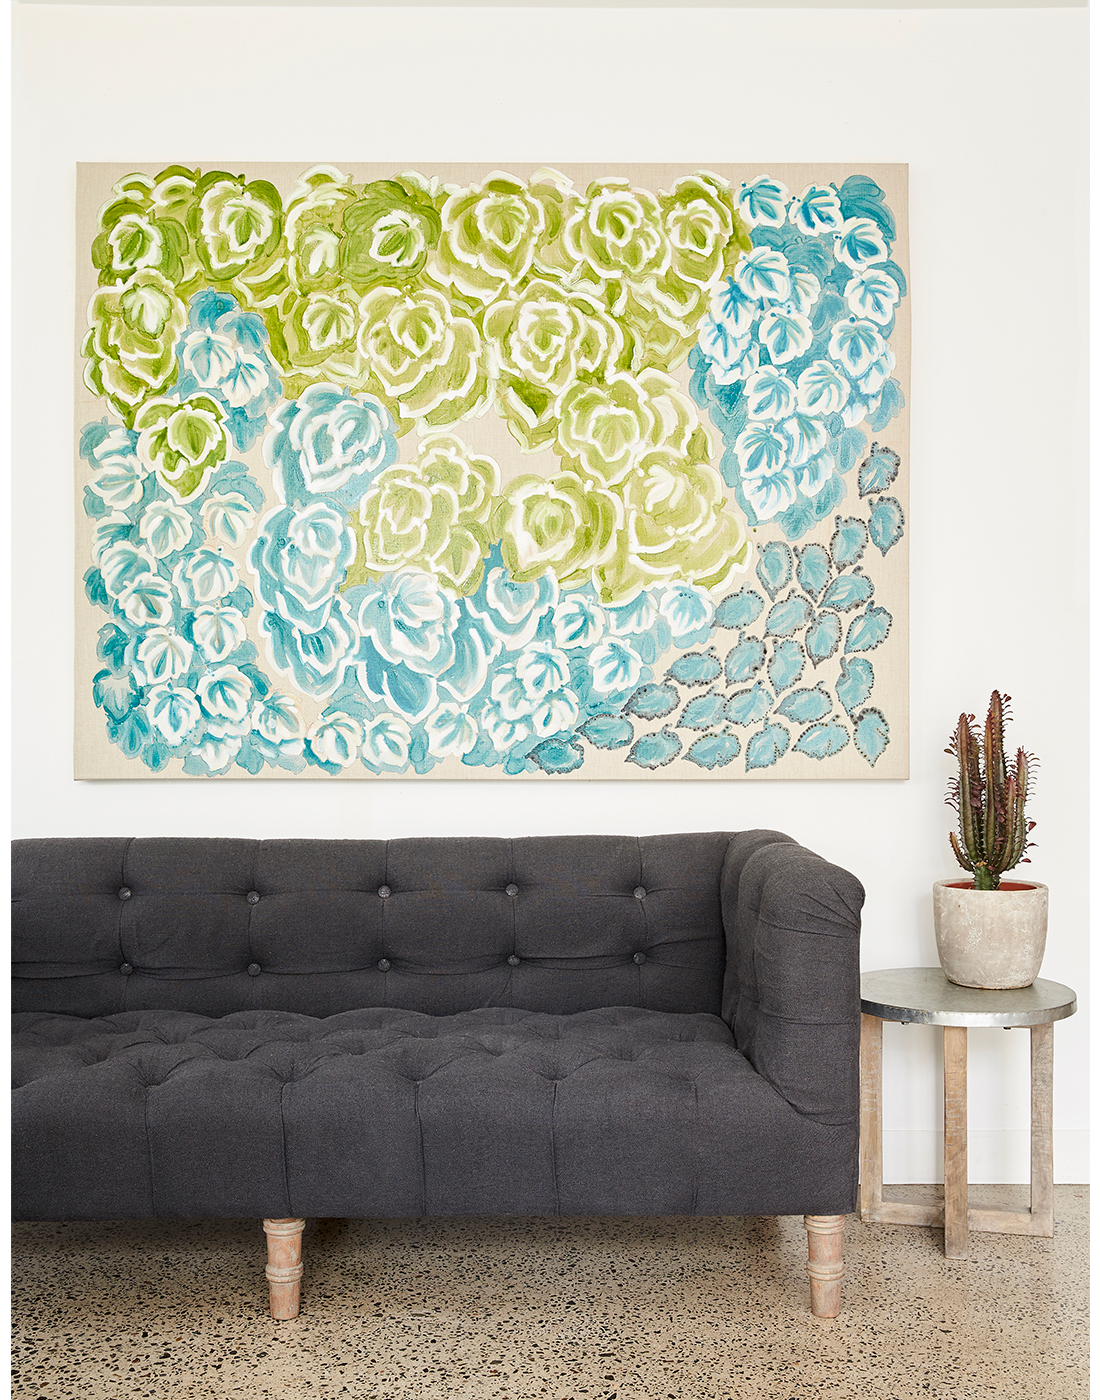 Green Wall stretched